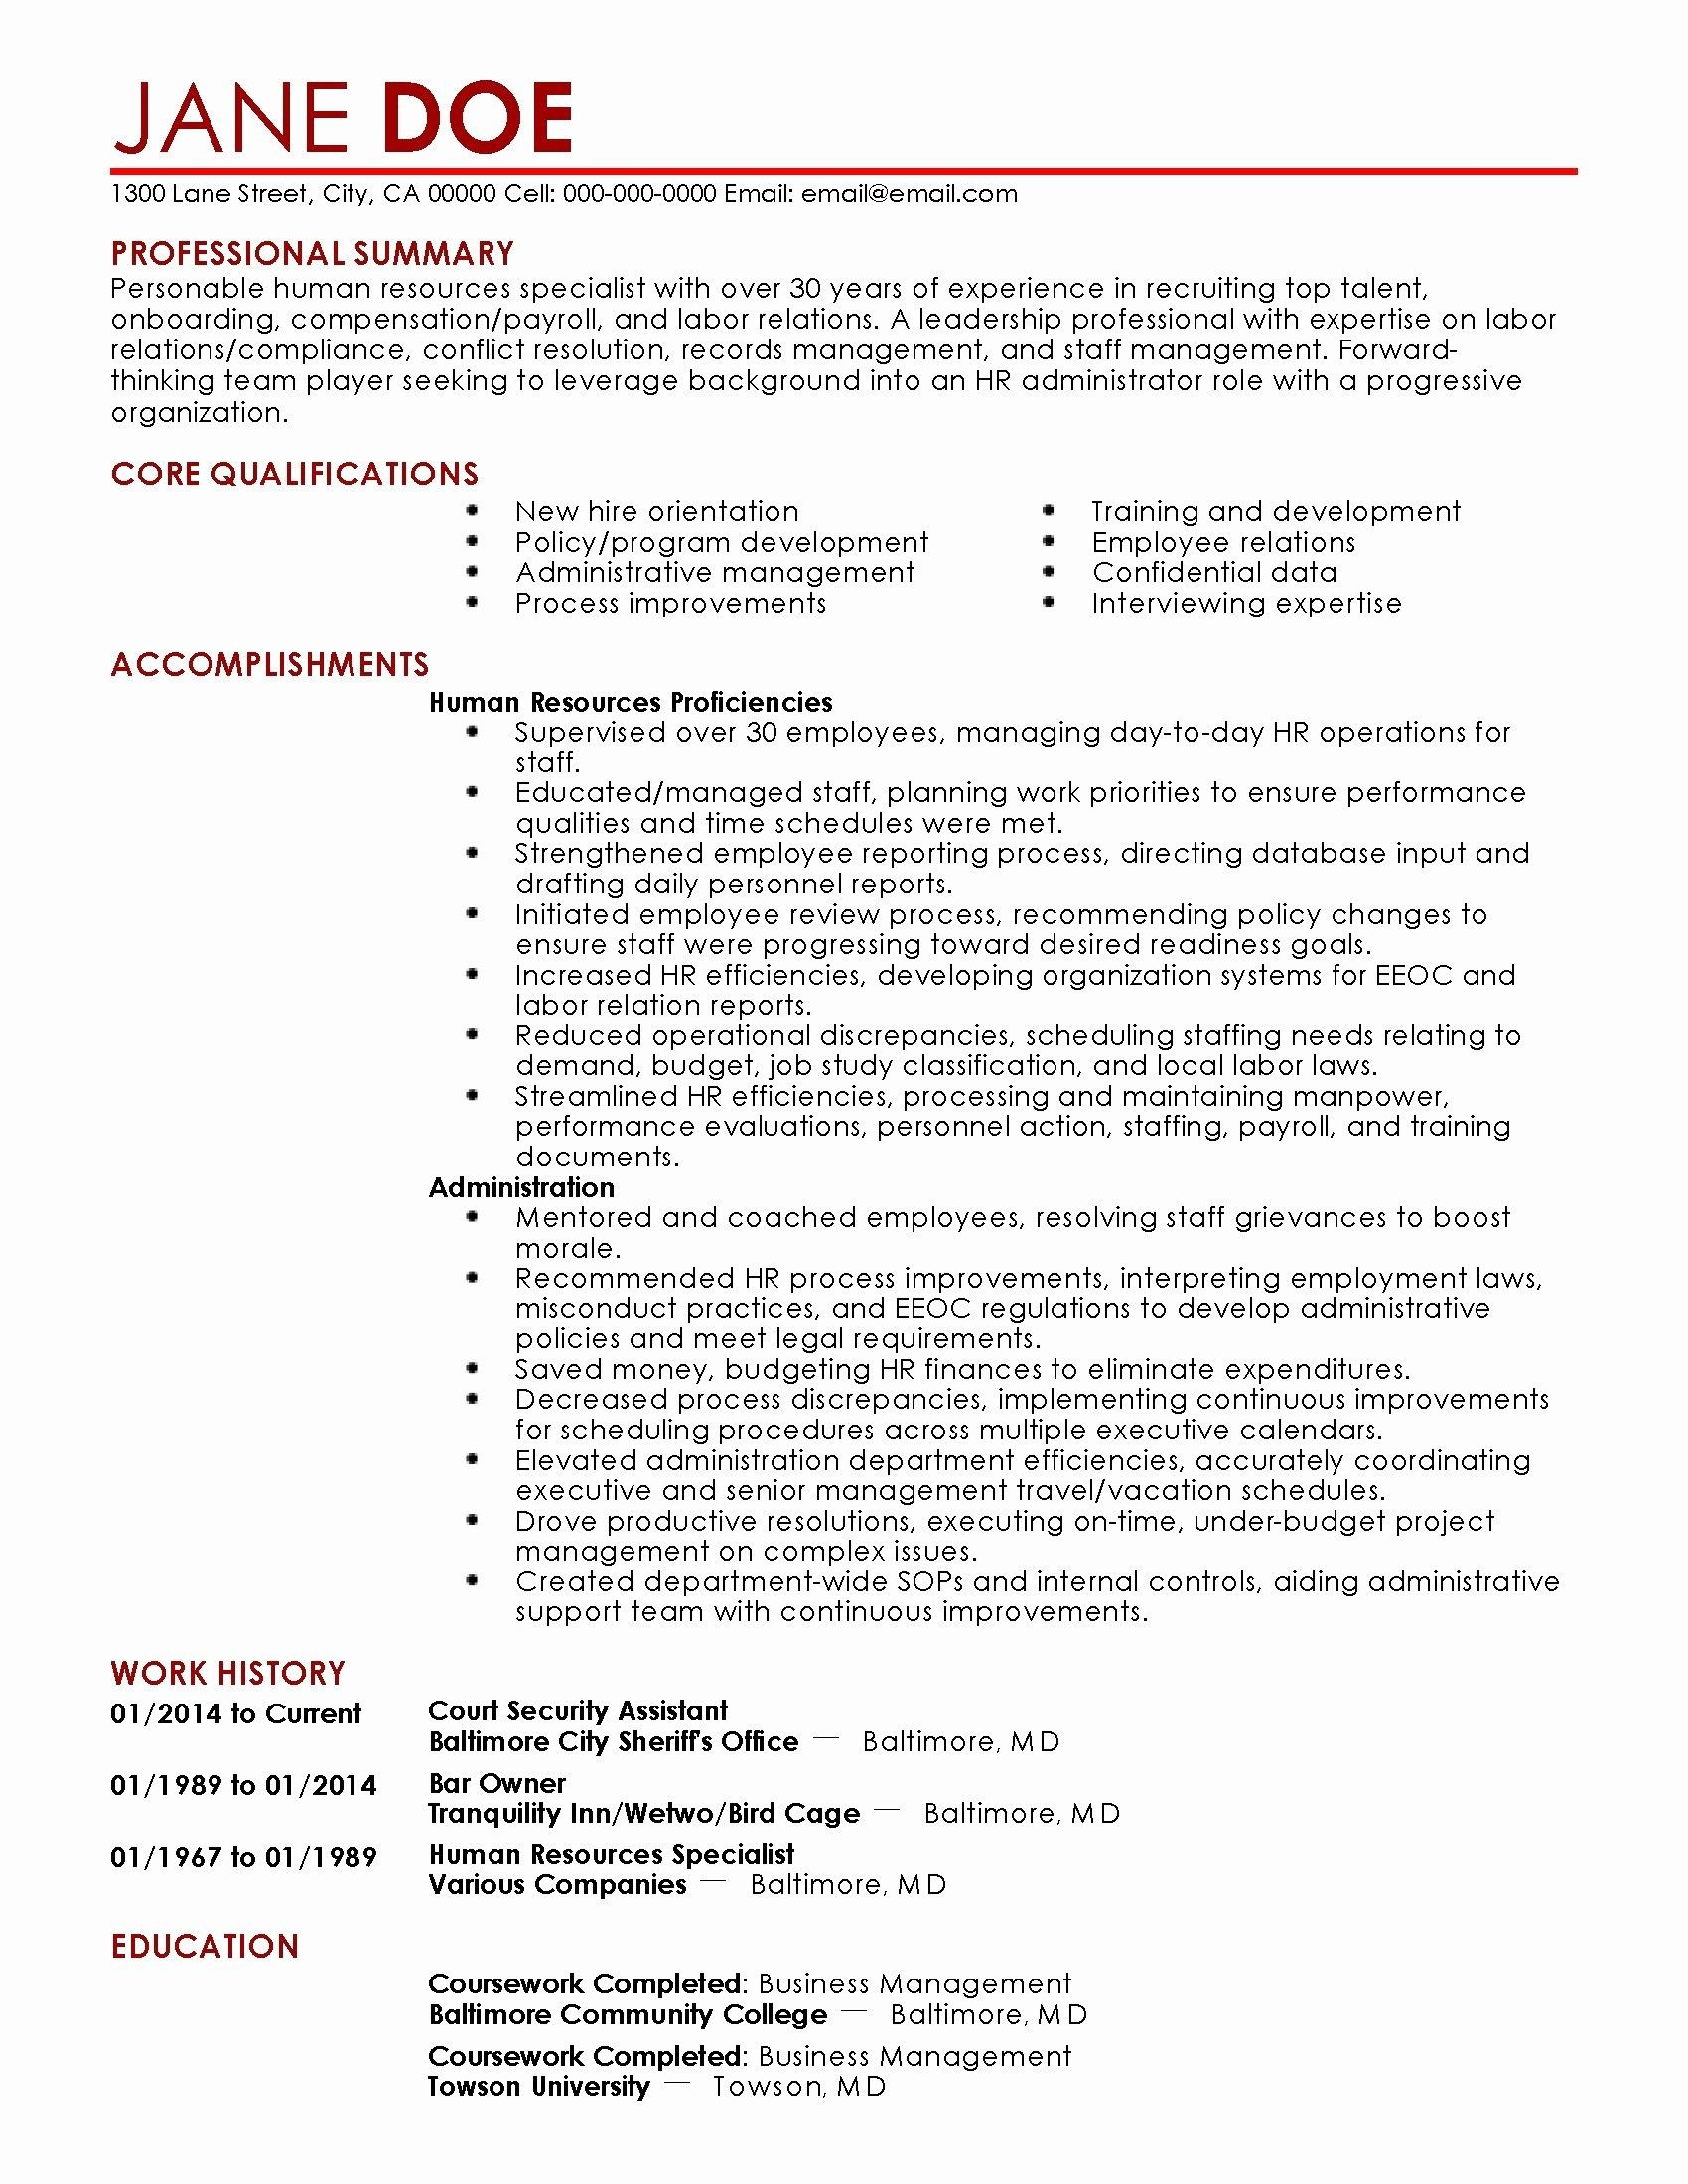 elegant photos of resume examples for administration officer medical assistant summary Resume Resume Format For Administrative Officer